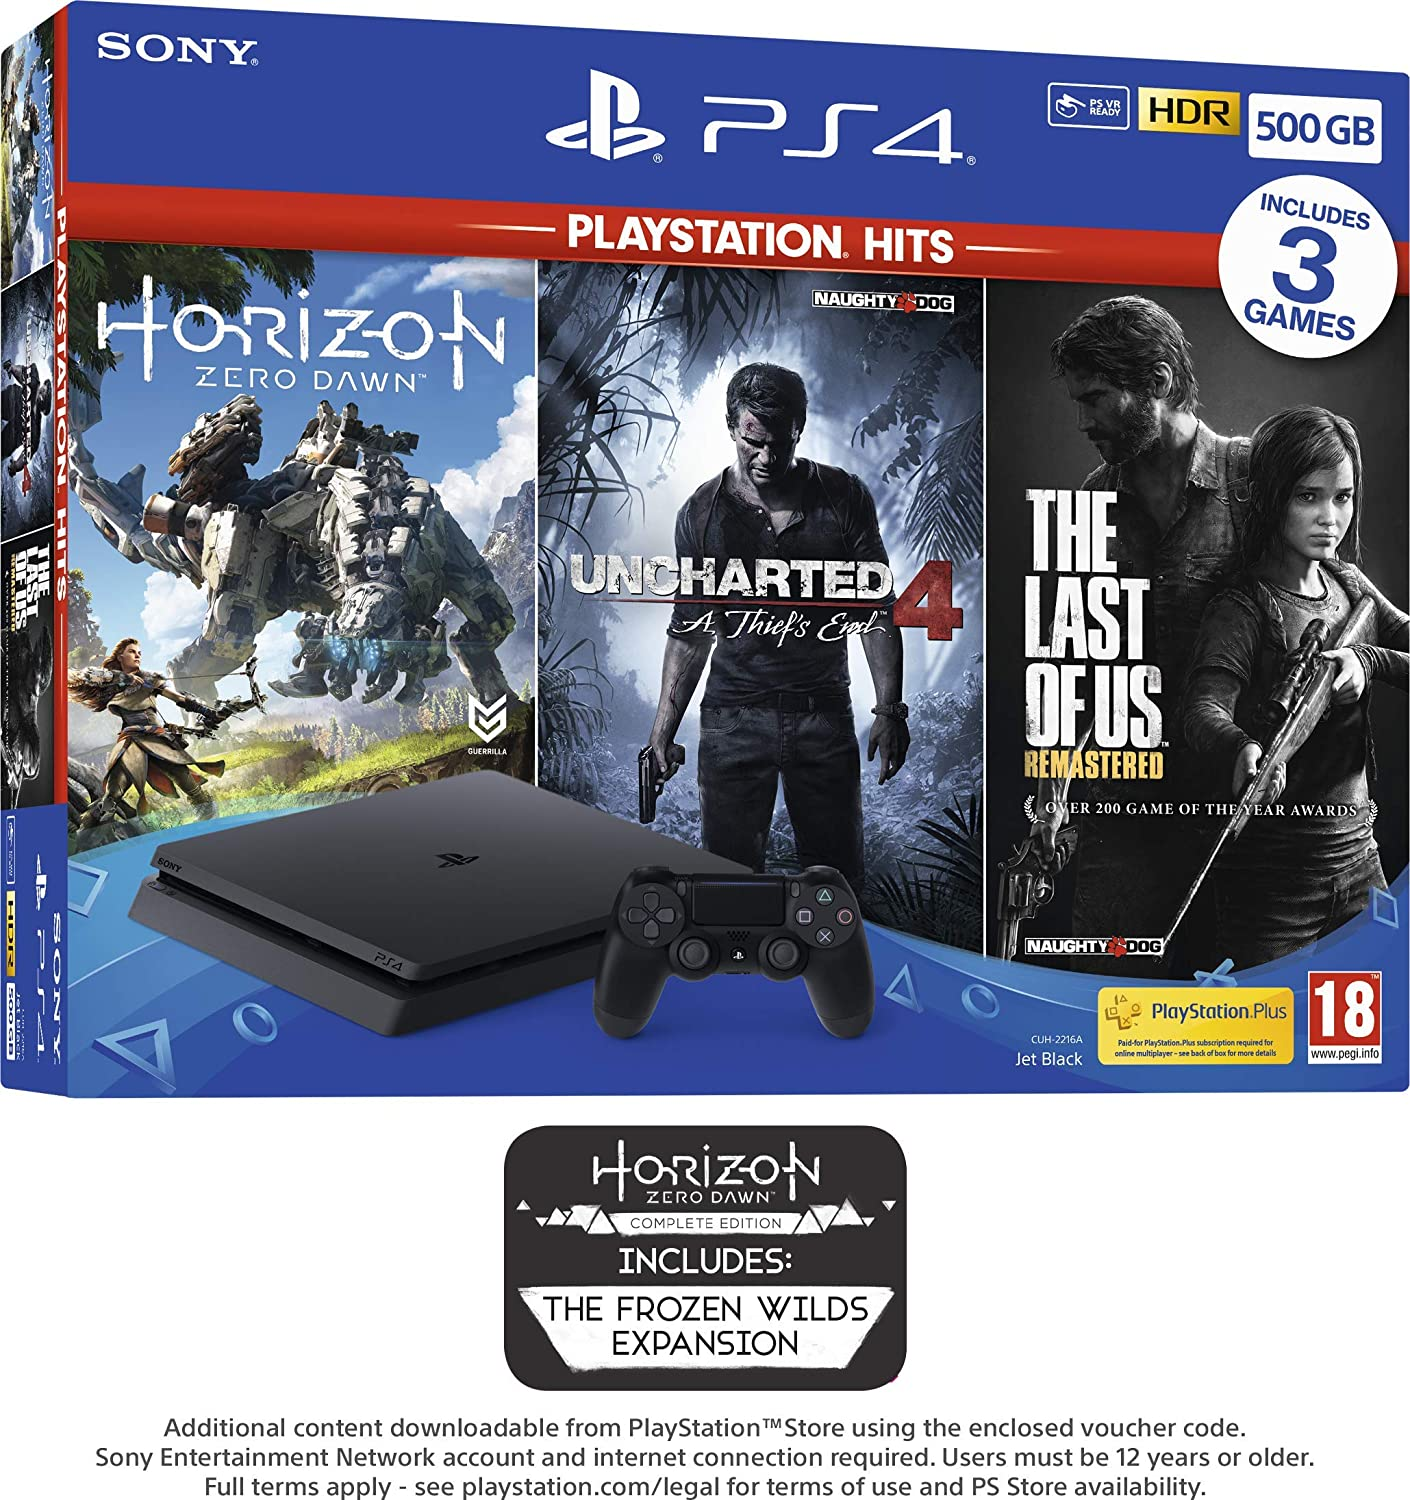 PS4 500GB with 3 PS Hits Game Bundle (PS4) (Exclusive to Amazon.co ...